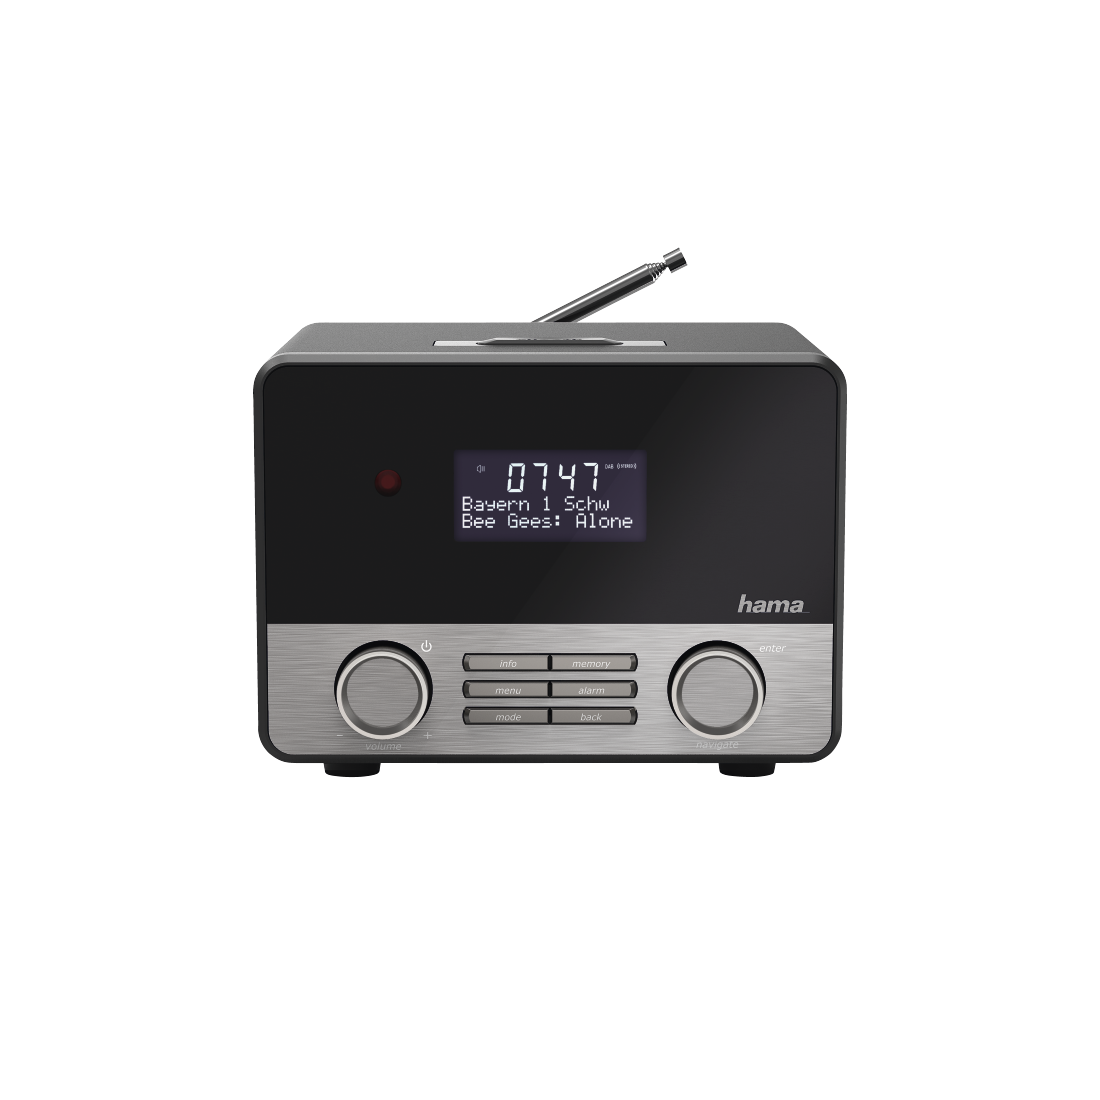 abx3 High-Res Image 3 - Hama, DR1600BT Digital Radio, DAB+/FM/Bluetooth